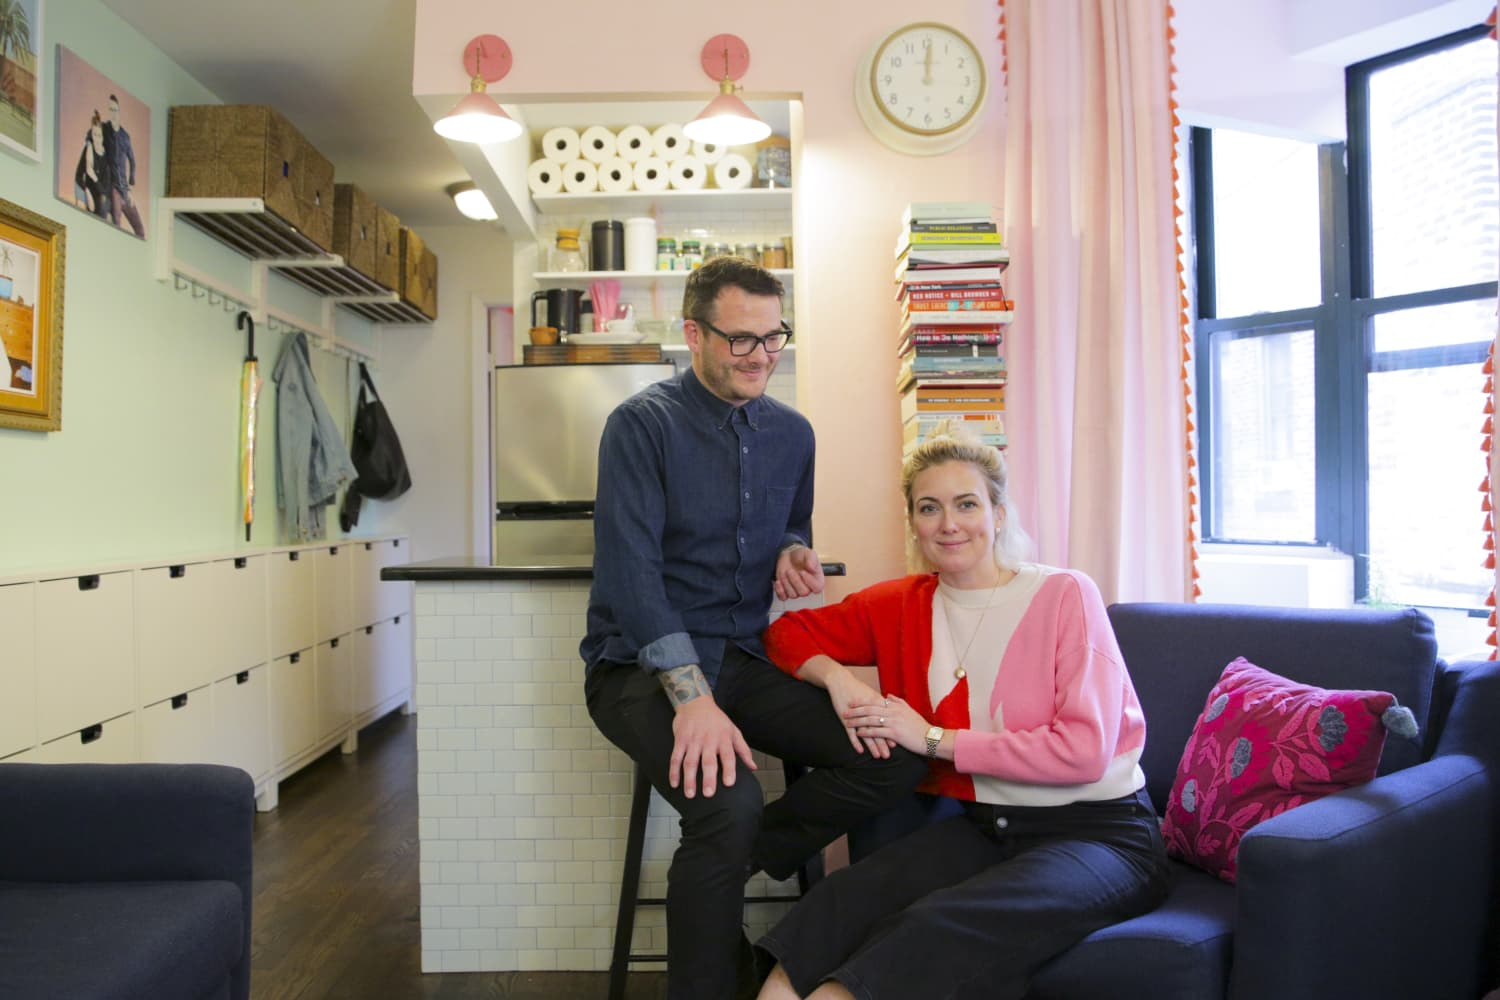 This Extremely Organized 350-Square-Foot NYC Apartment Will Make You Re-Think Your Storage Situation